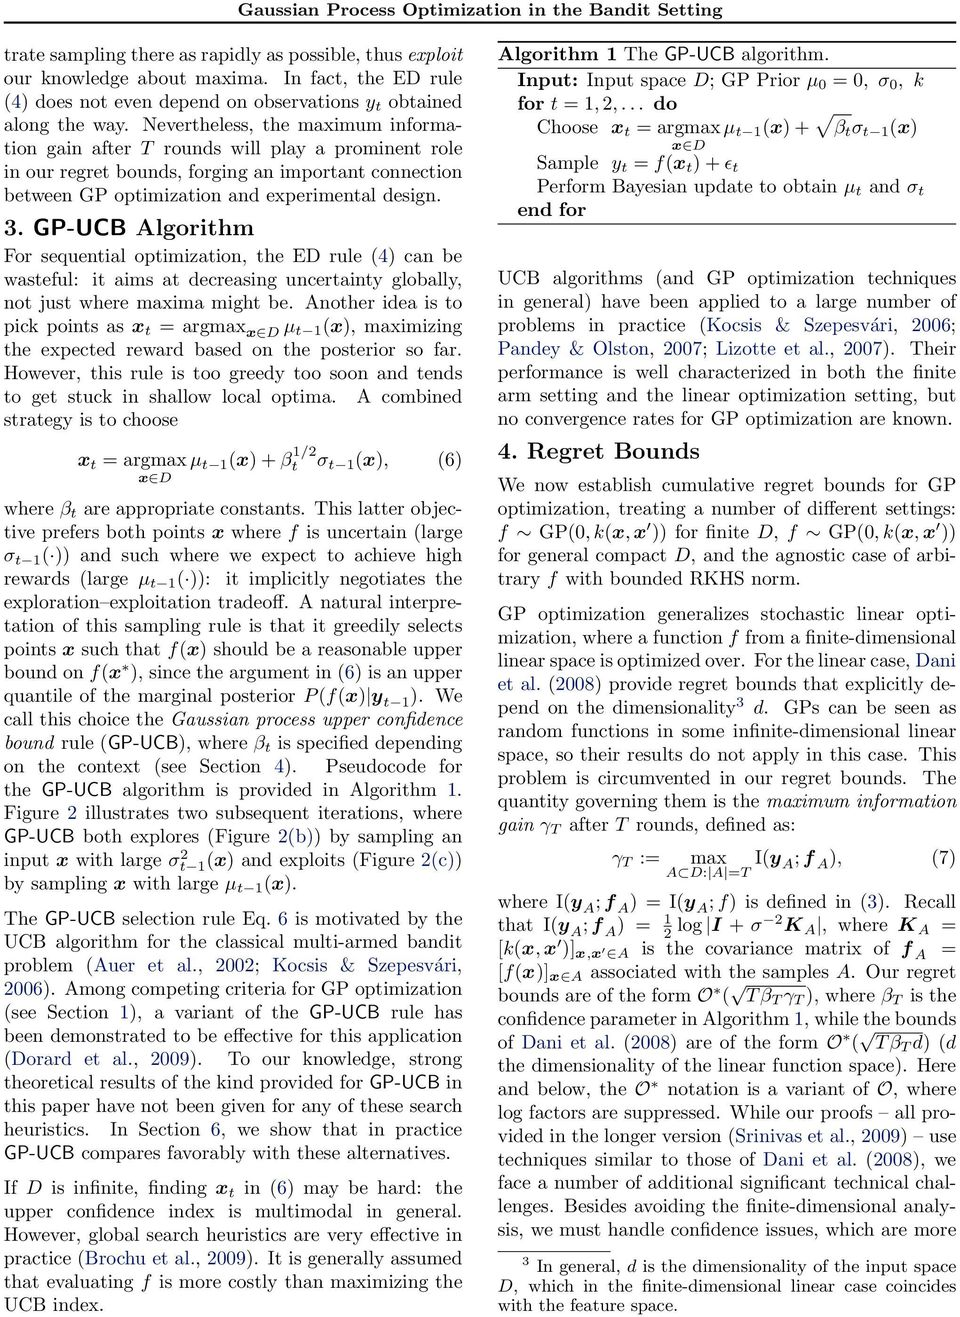 GP-UCB Algorithm For sequential optimization, the ED rule (4) can be wasteful: it aims at decreasing uncertainty globally, not just where maxima might be.